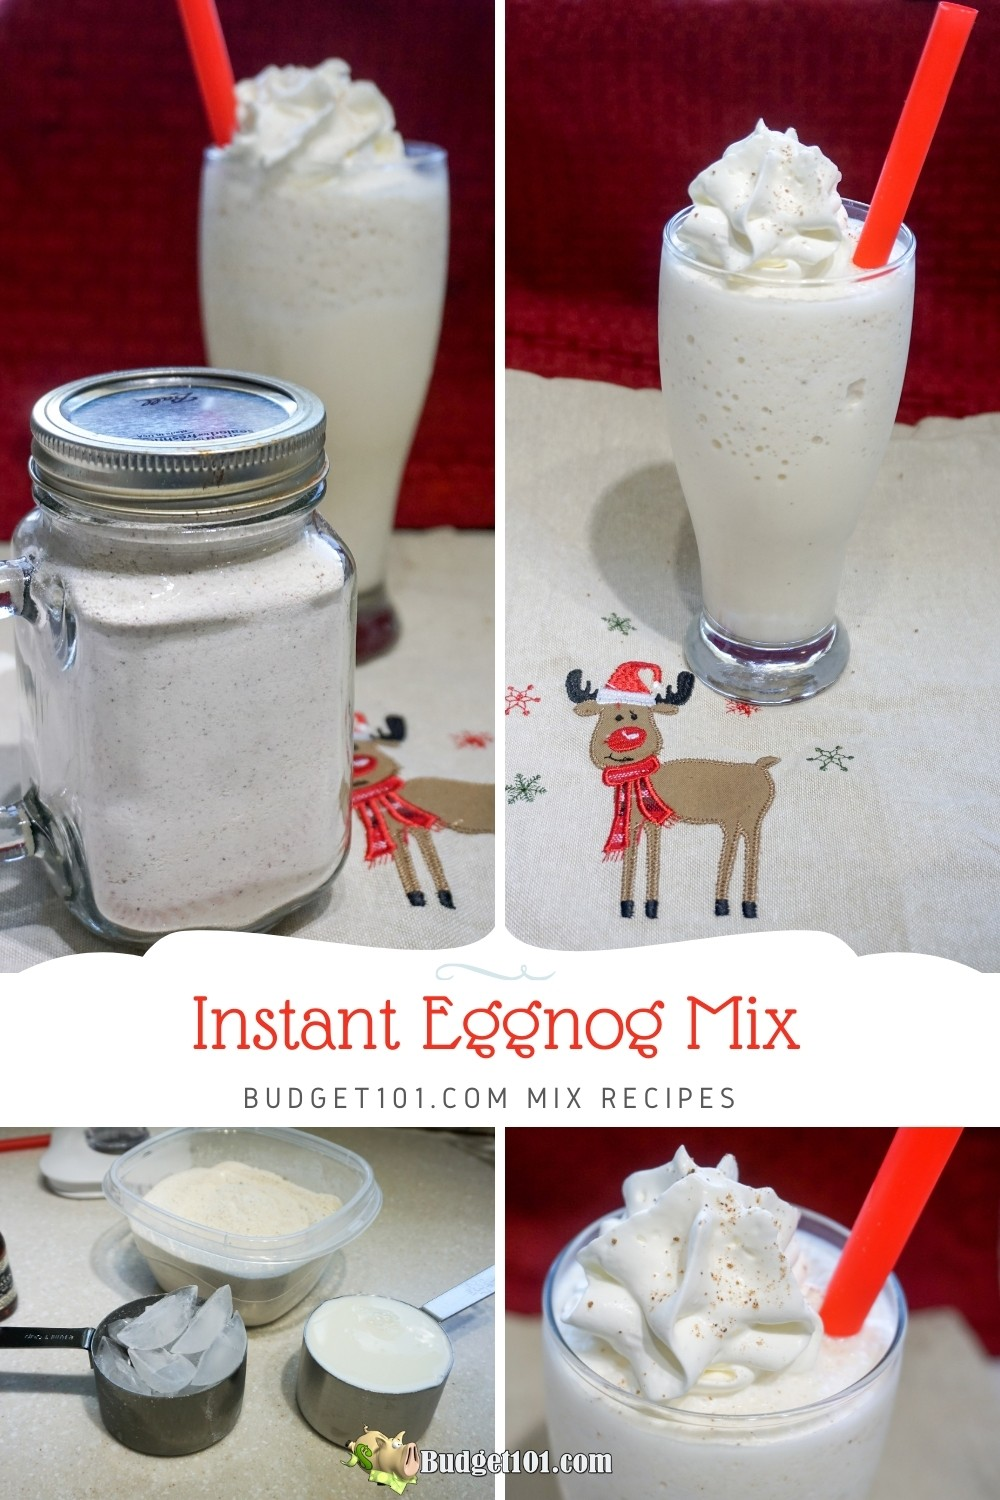 Make your own delicious, rich Instant Eggnog Mix for quick holiday drinks and cocktails, or as a lovely gift basket addition #eggnog #instanteggnog #nog #MYO #mixes #homemademixes #budget101 #budgetmixes